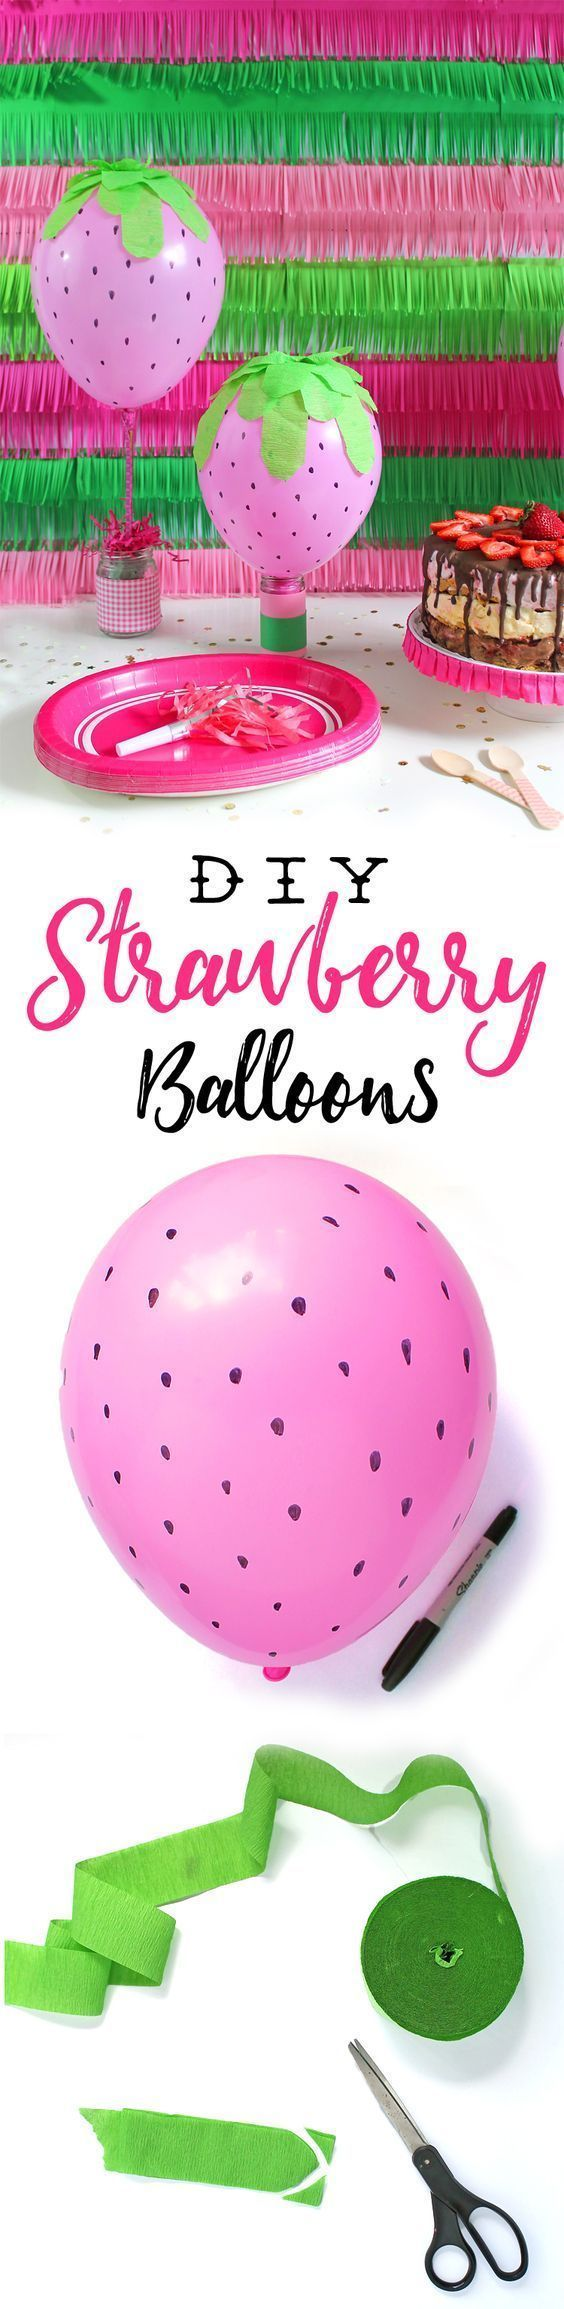 DIY Strawberry Balloon Party Decorations. So cute for a Strawberry Shortcake party or a berry themed party